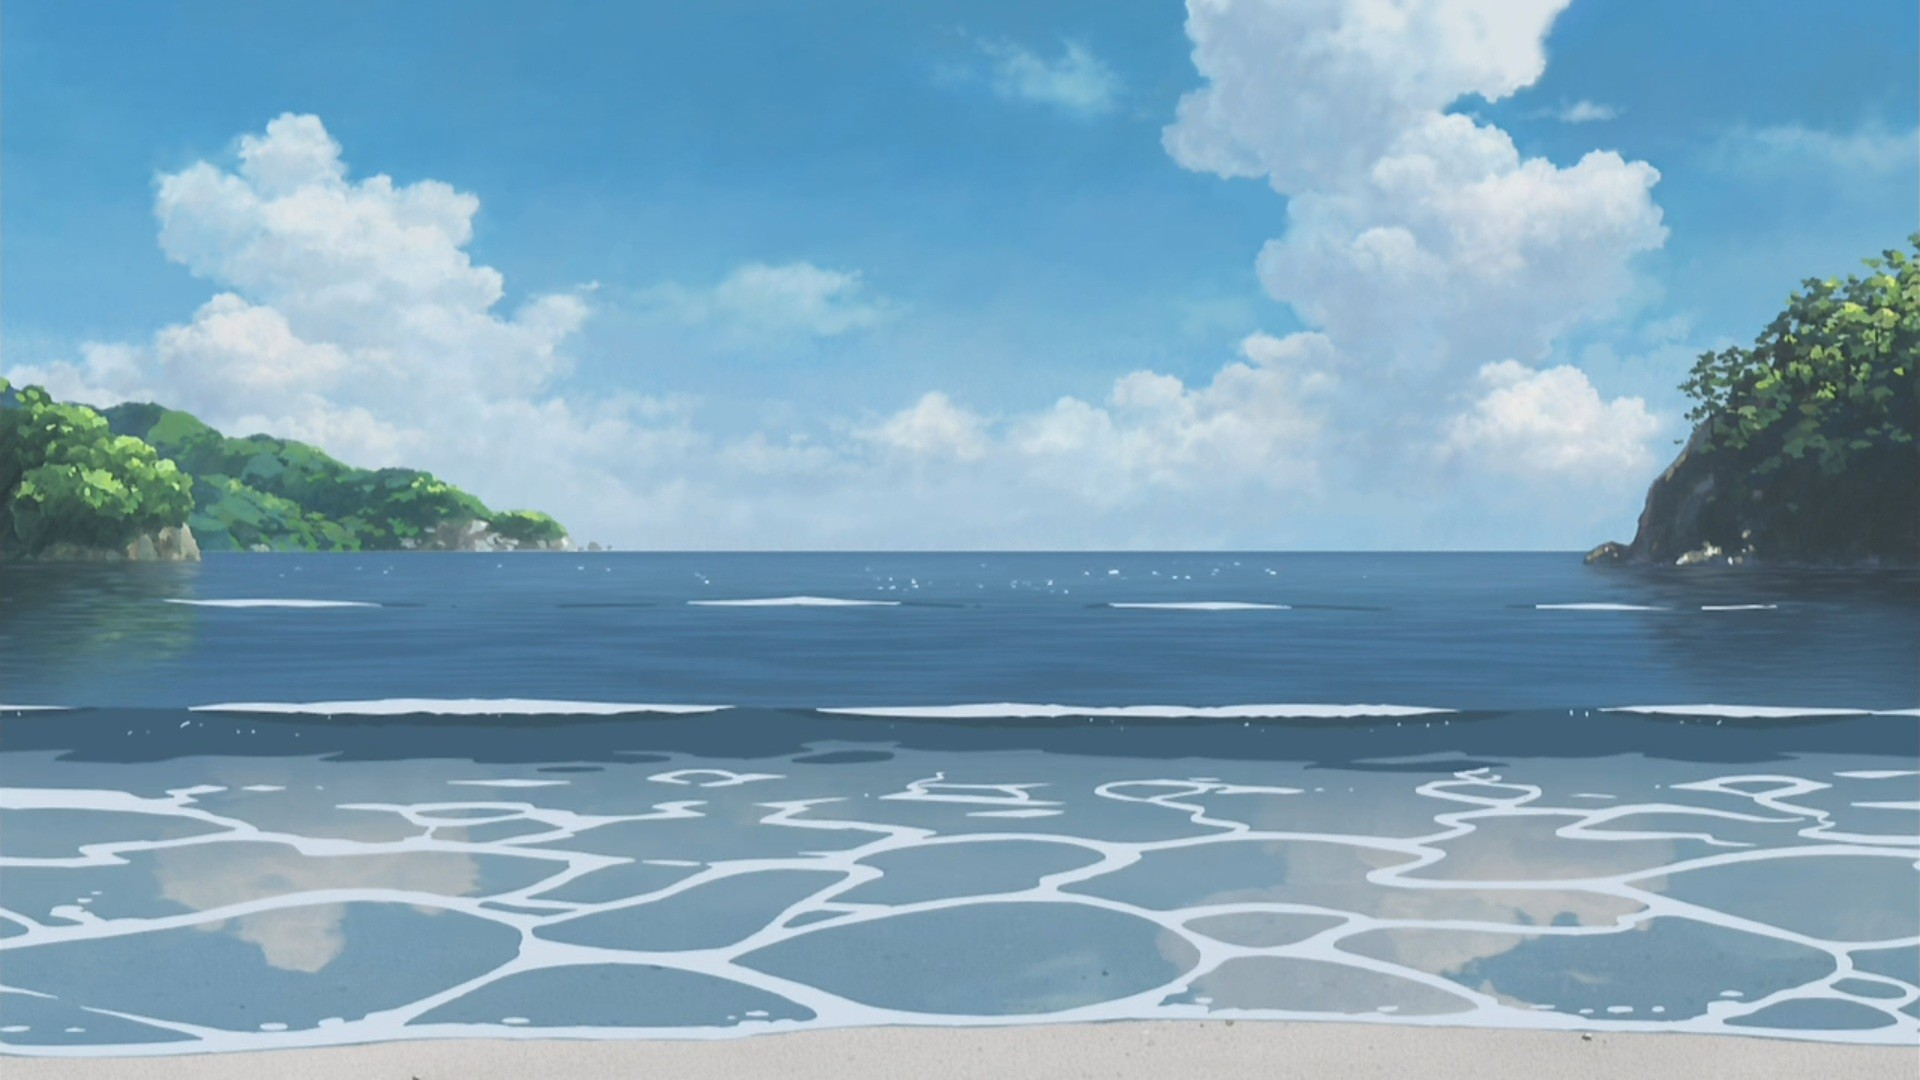 Anime Ocean Background - Fantasy Background Anime Royalty Free - HD Wallpaper